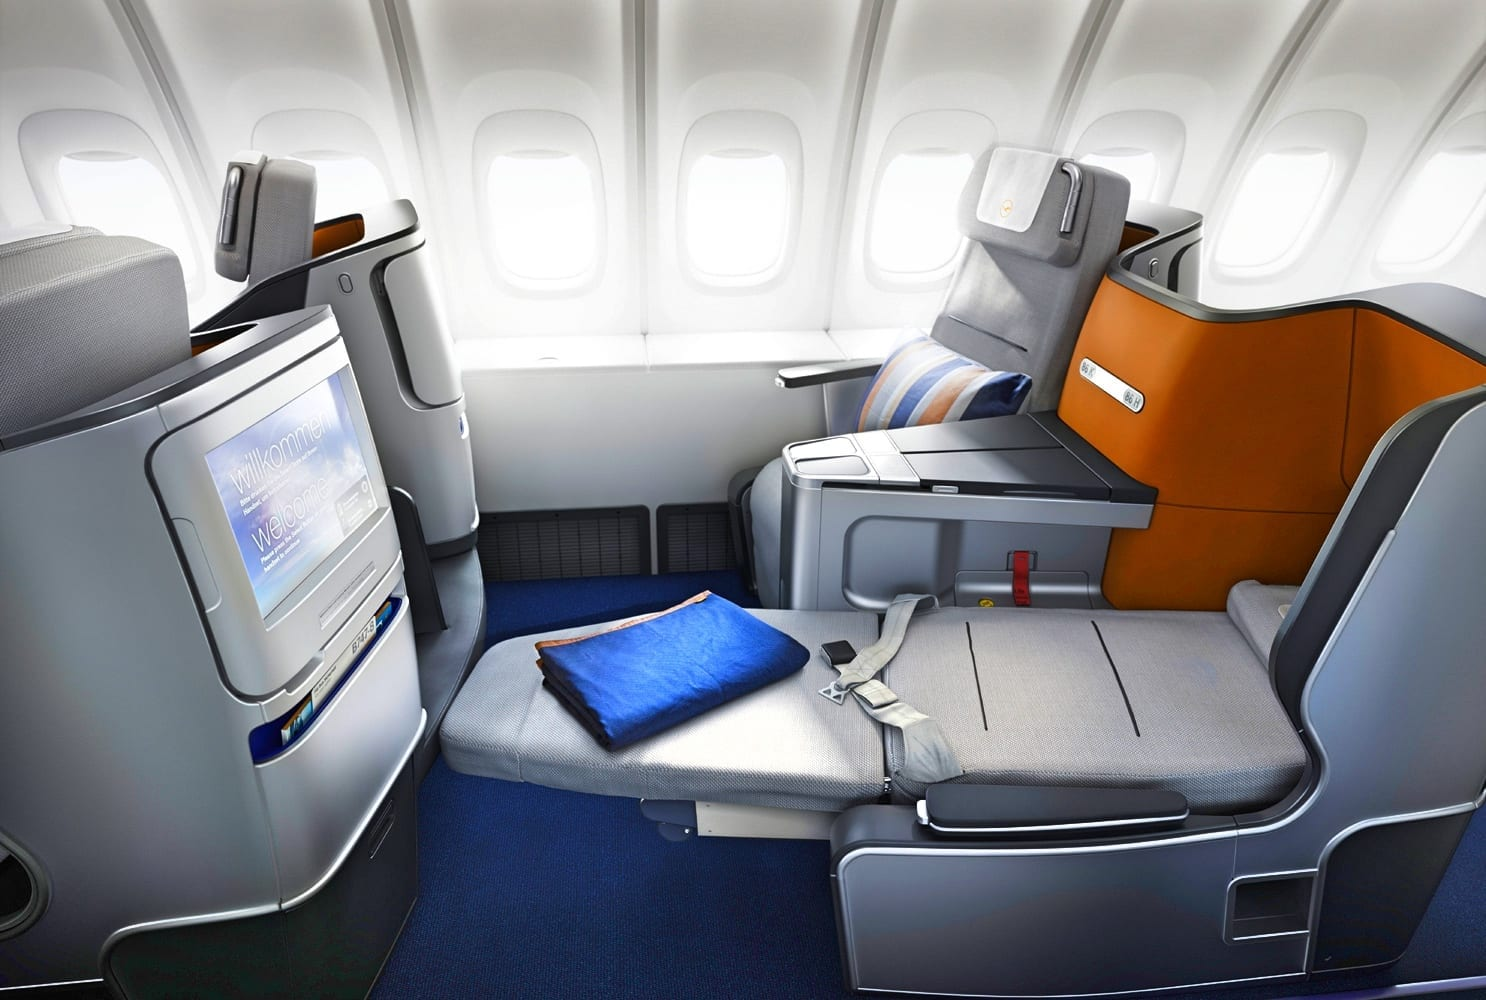 Incredible Deal: €344 Business Class Zurich To Kuwait Or Saudi Arabia Round Trip (2 Pax Only)... - God Save The Points